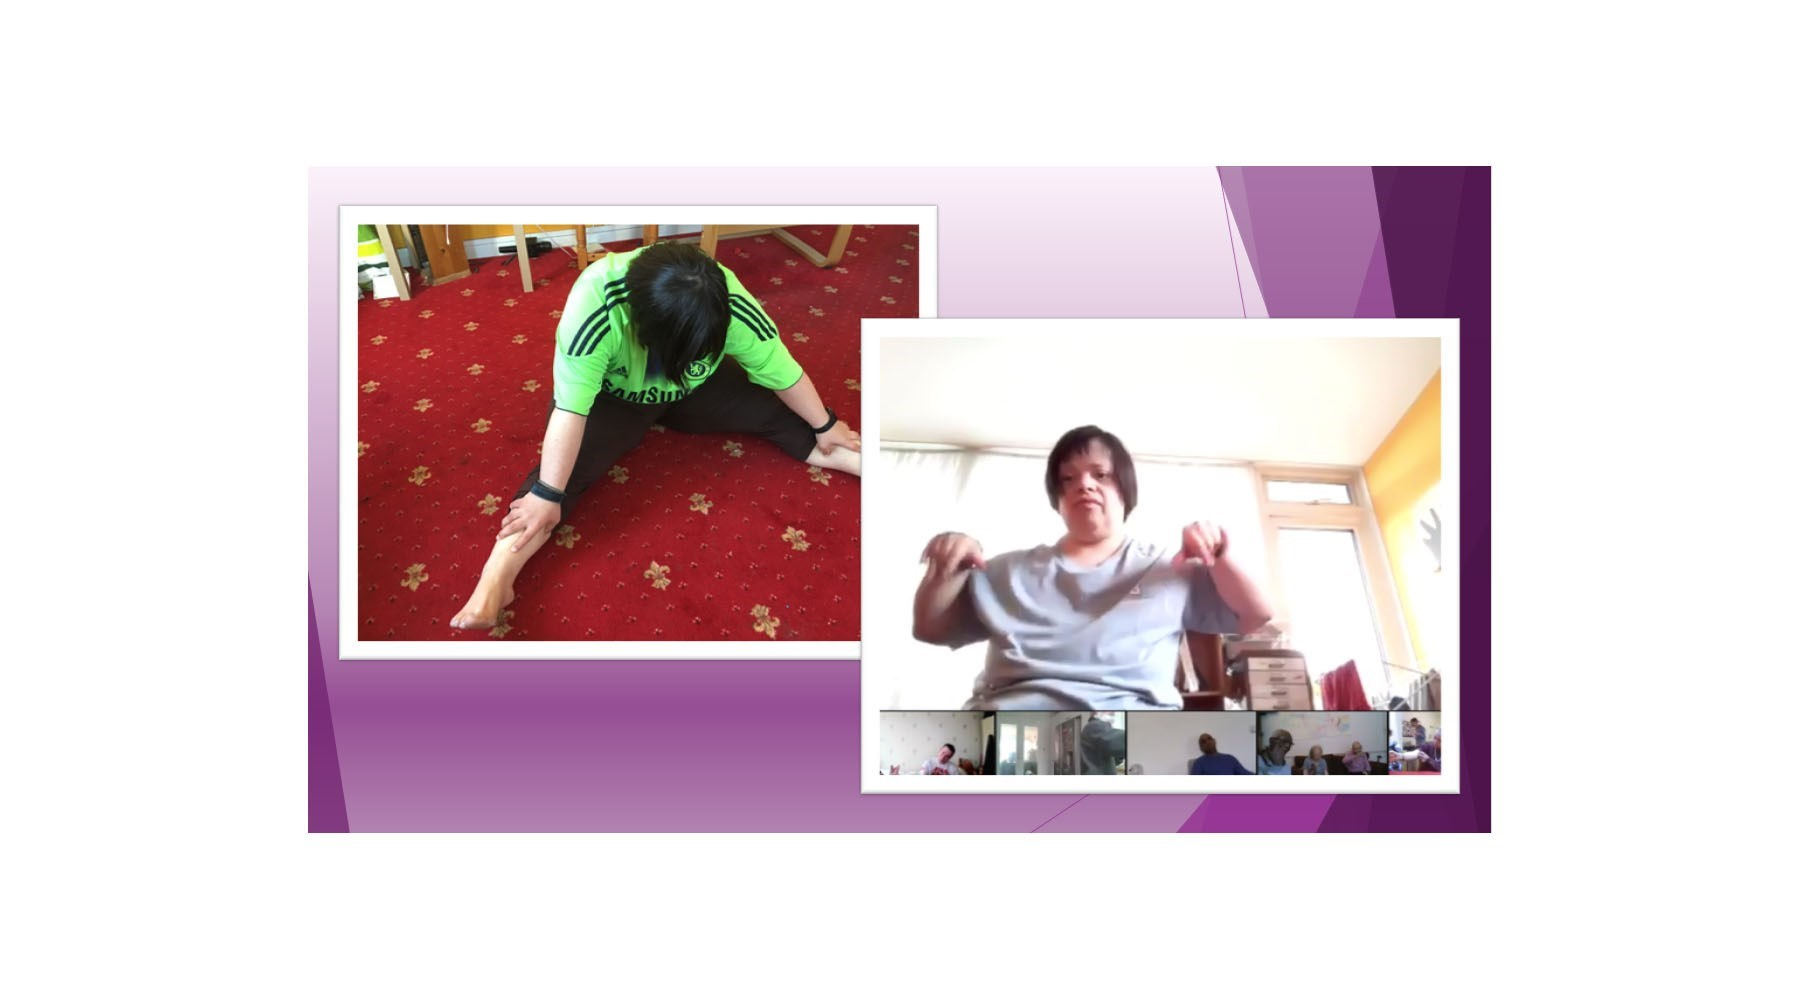 Pictures of a woman doing exercise